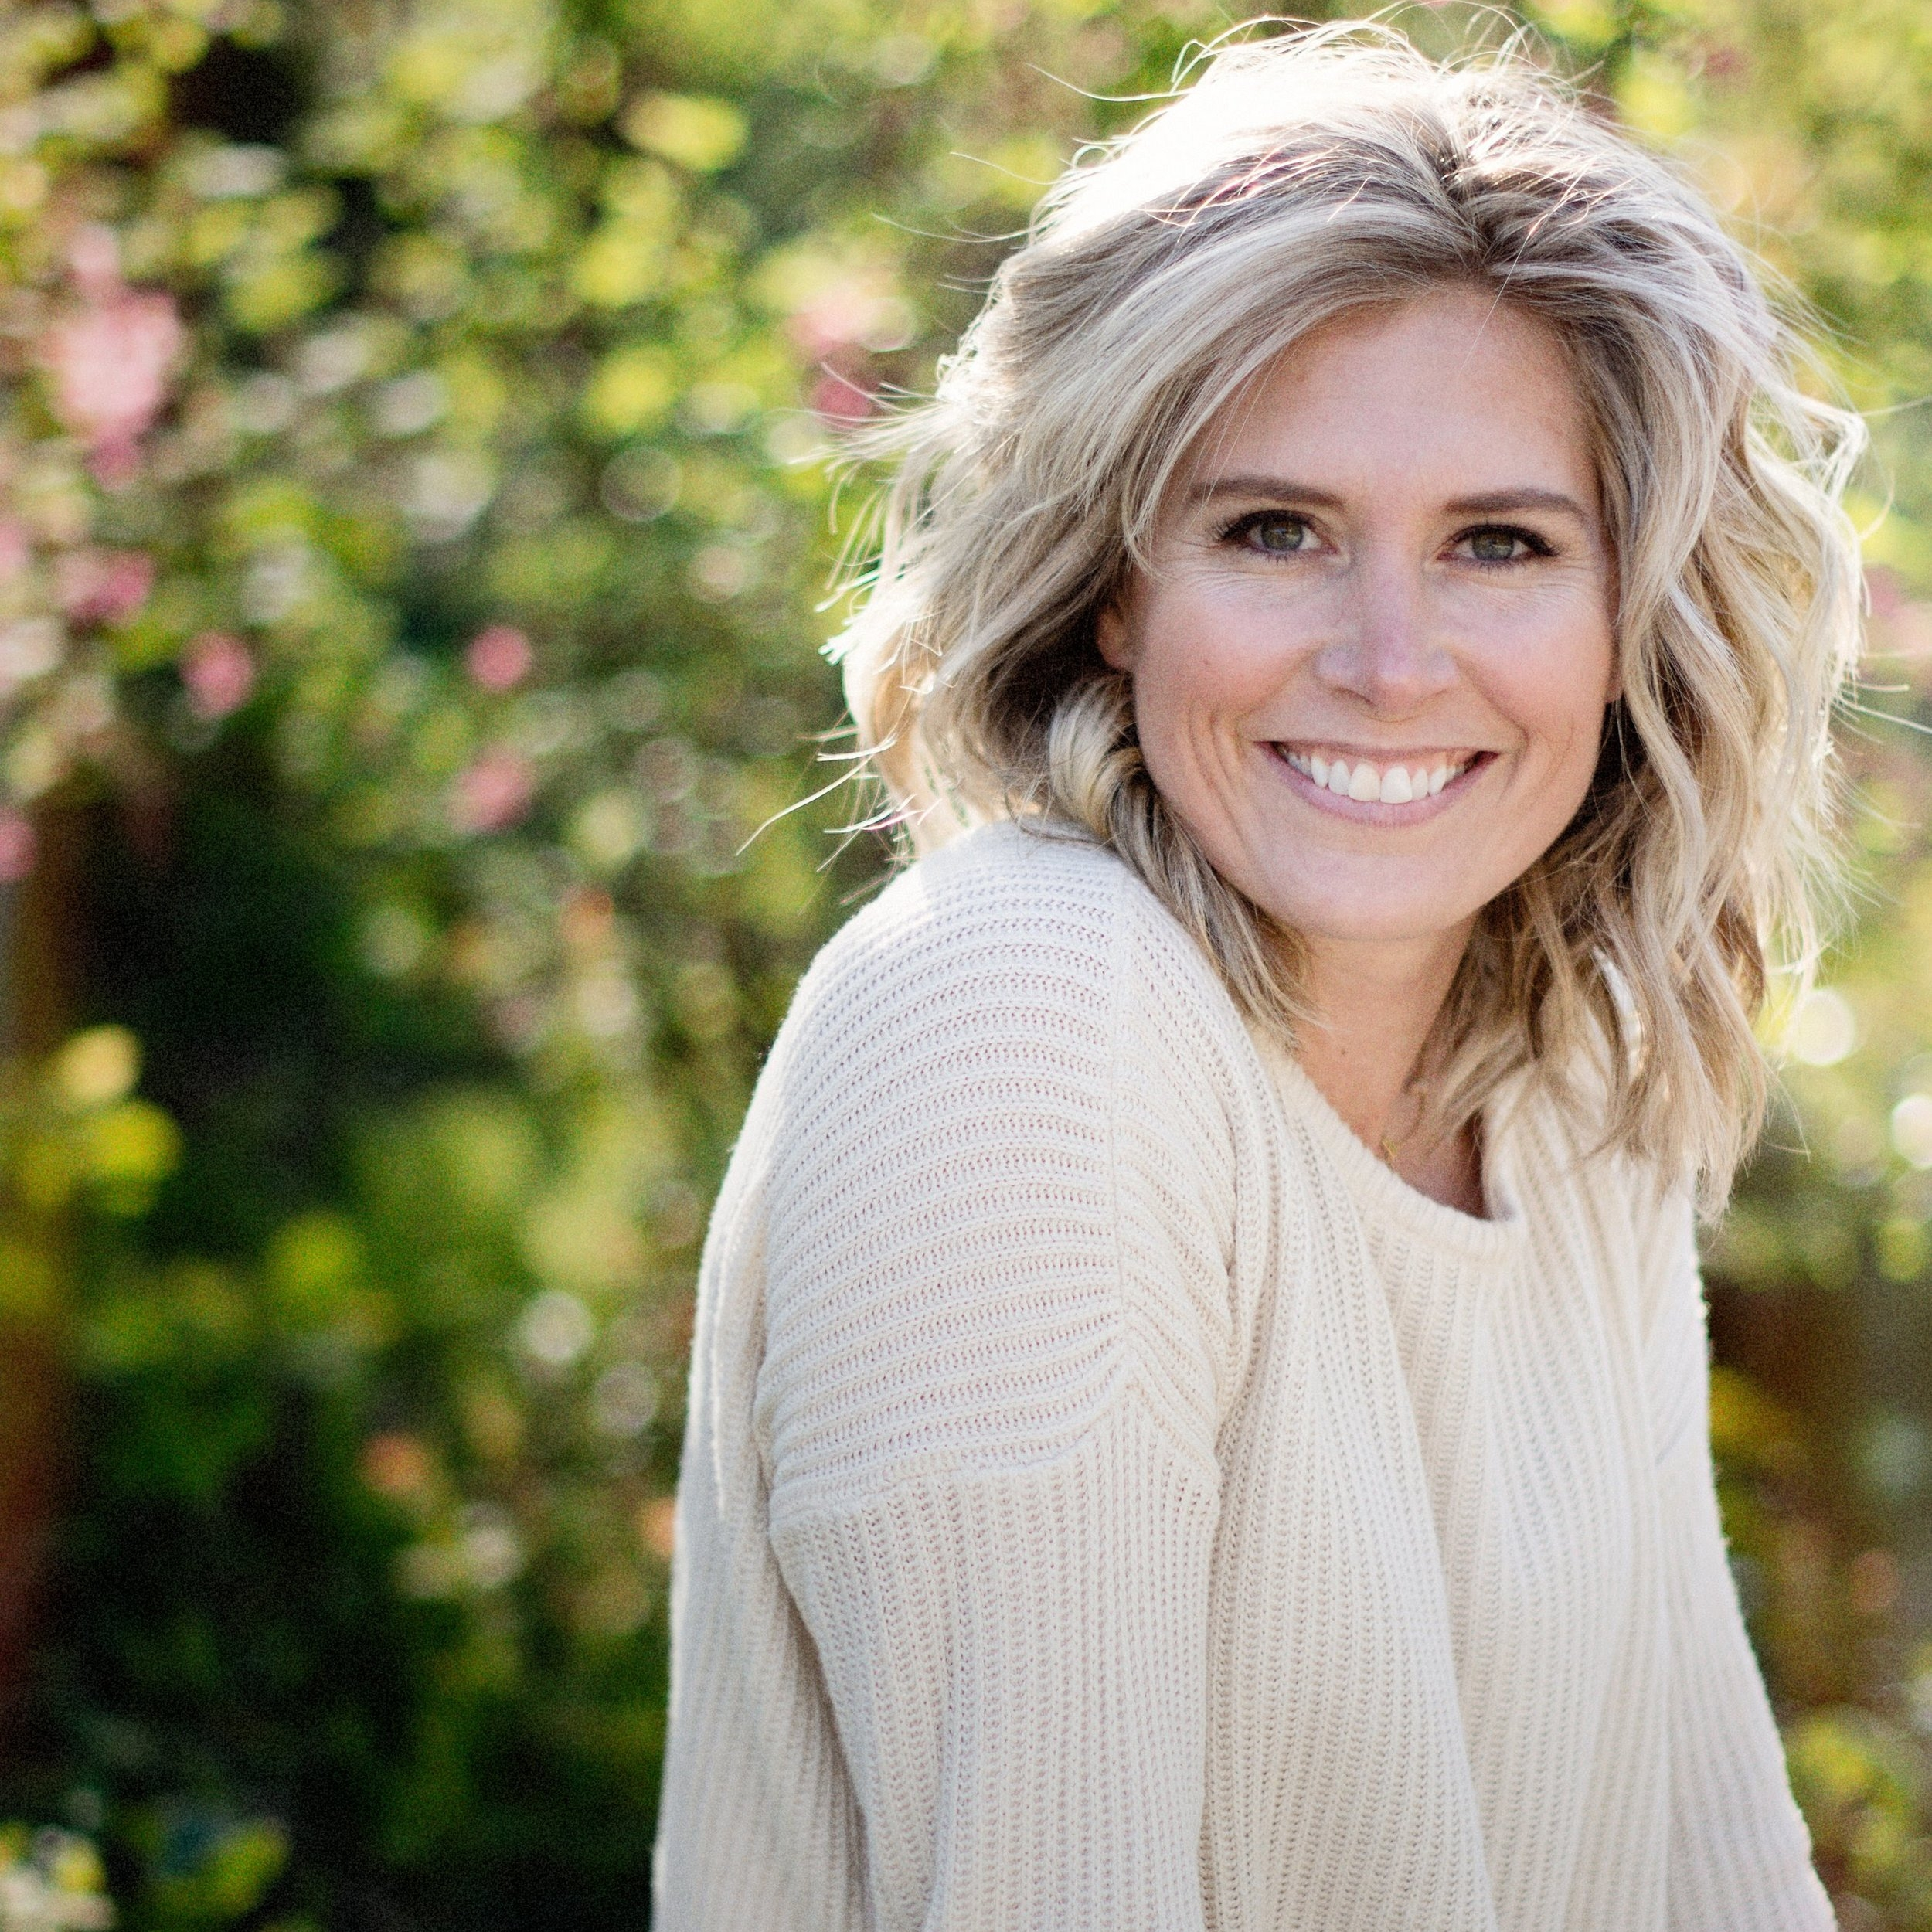 """Emily Brand, Strength Coach    """"Kate taught me how my intuition can be a powerful tool in my business. Turns out people are craving connection on many different levels. I wholeheartedly value her insight and entrepreneurial prowess."""""""